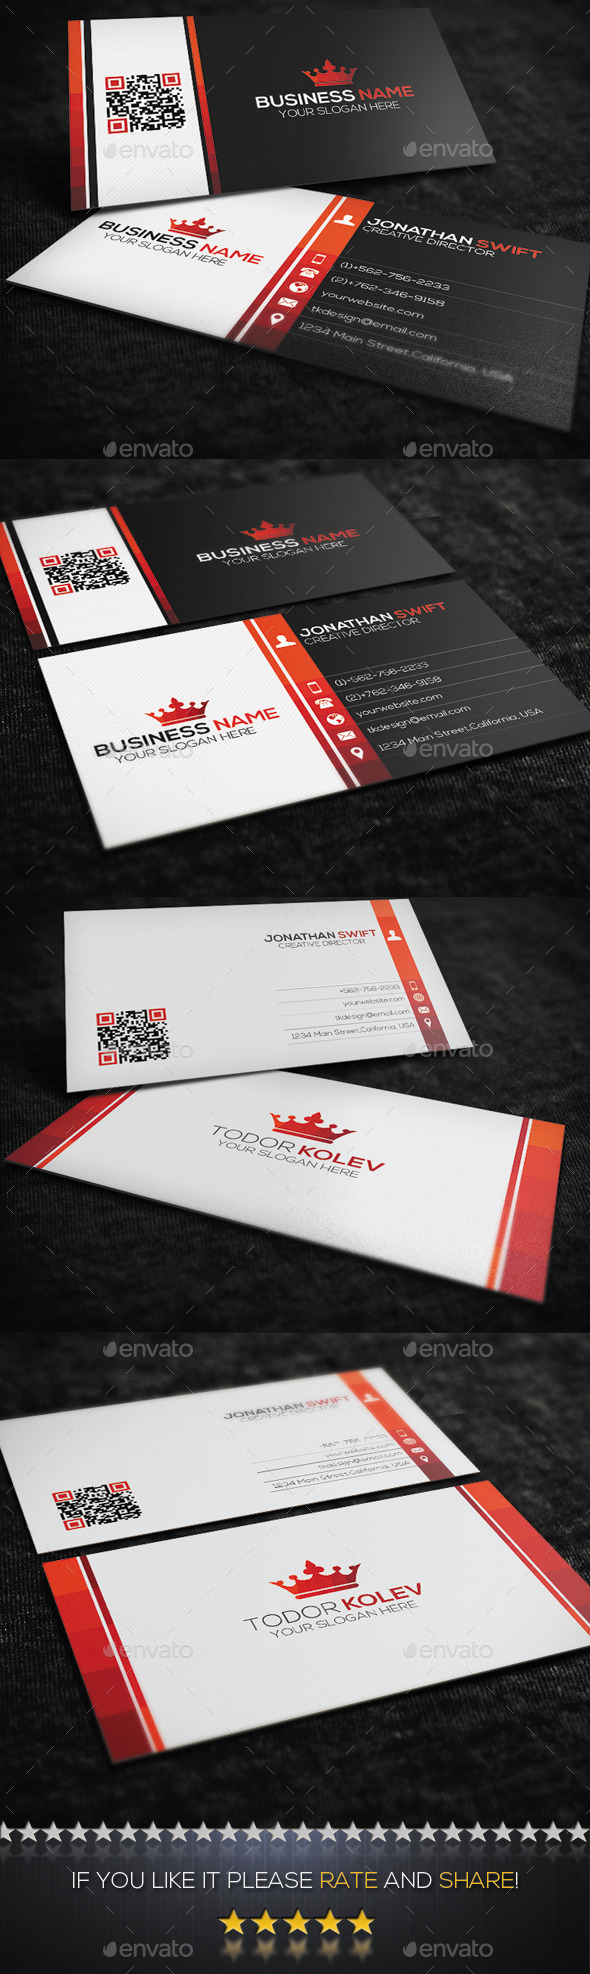 GraphicRiver 2 in 1 Corporate Business Card Bundle 8805076